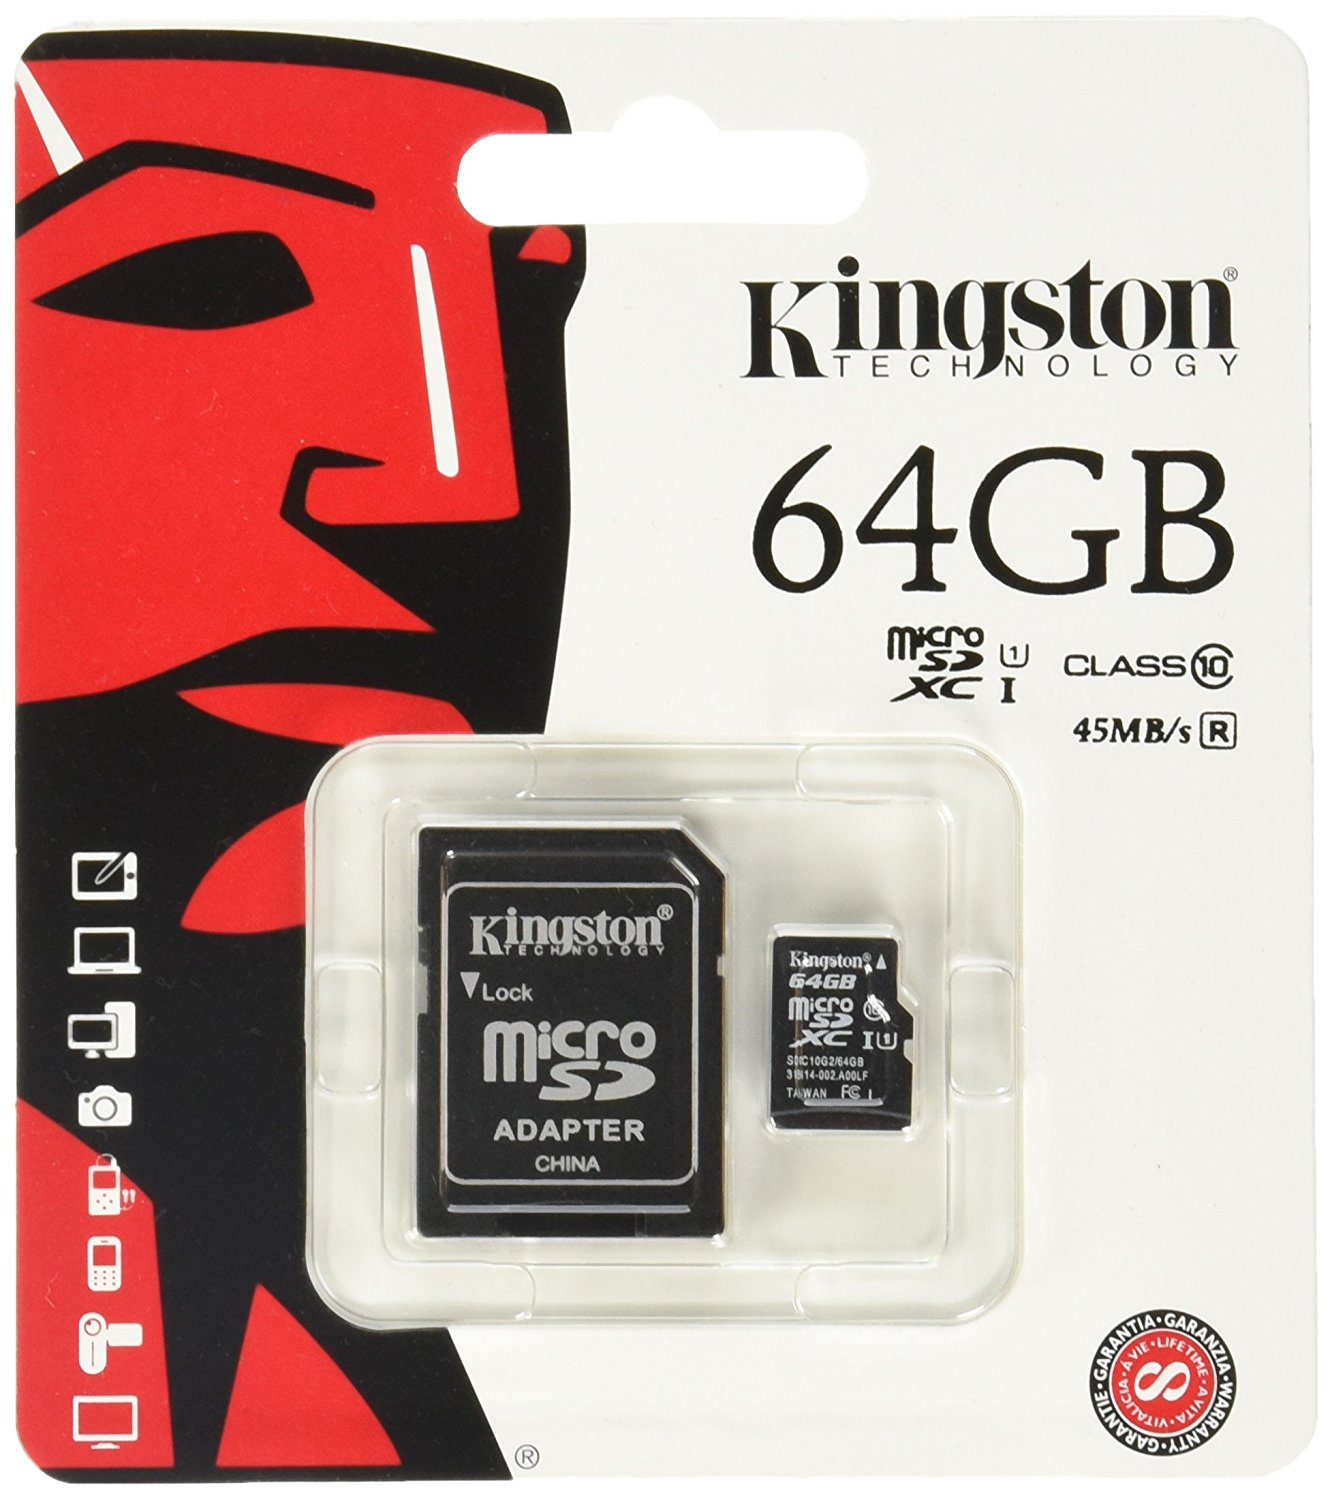 KINGSTON 64 GB Micro SDHC Memory Card with Adaptor